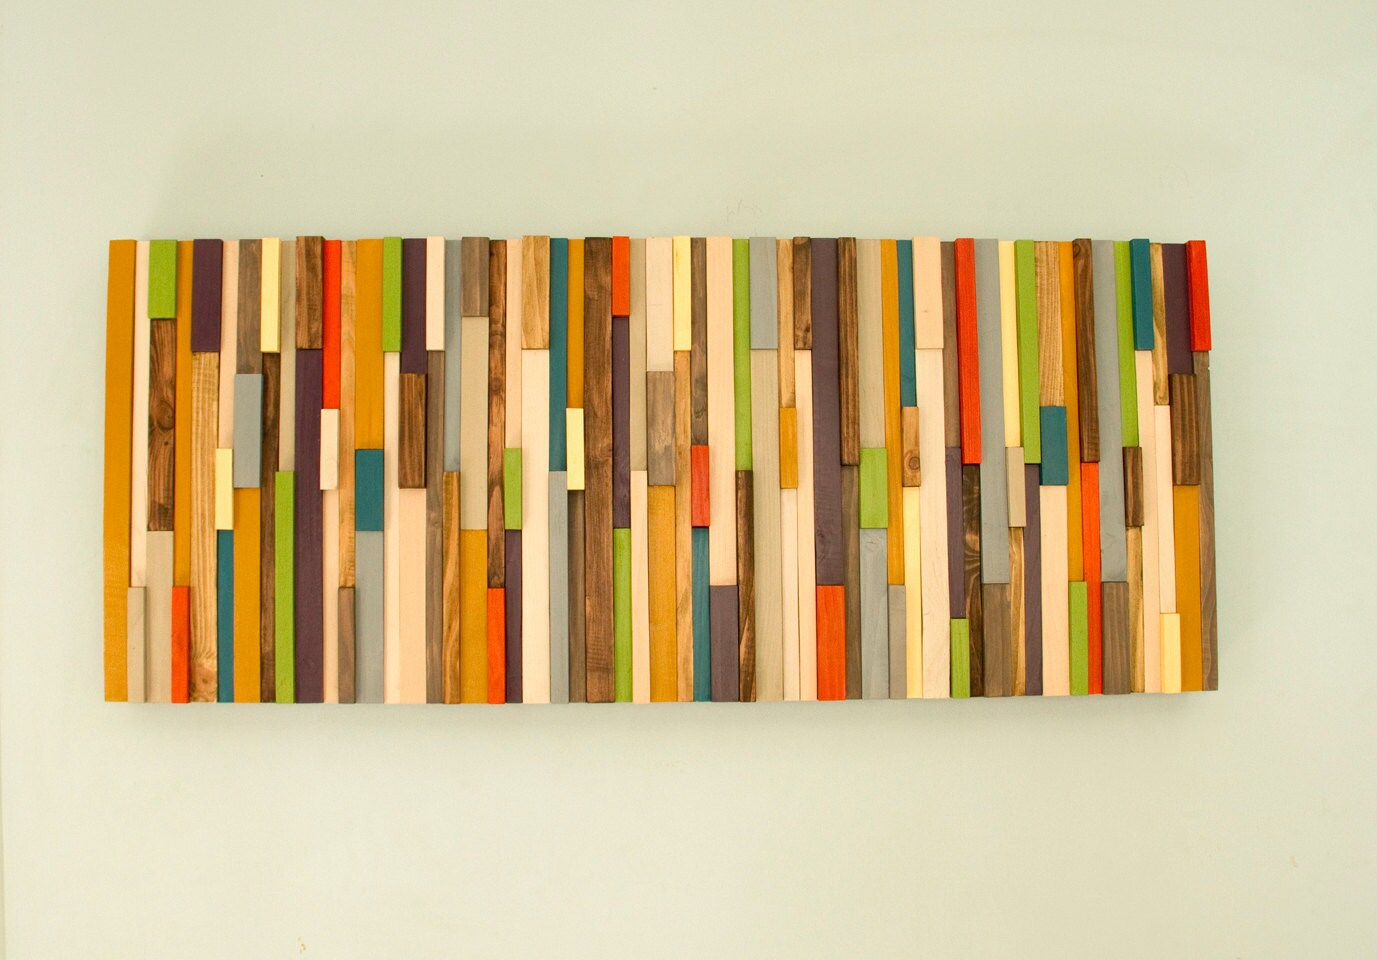 Beautiful Wood Wall Art For Sale Images - Art & Wall Decor ...